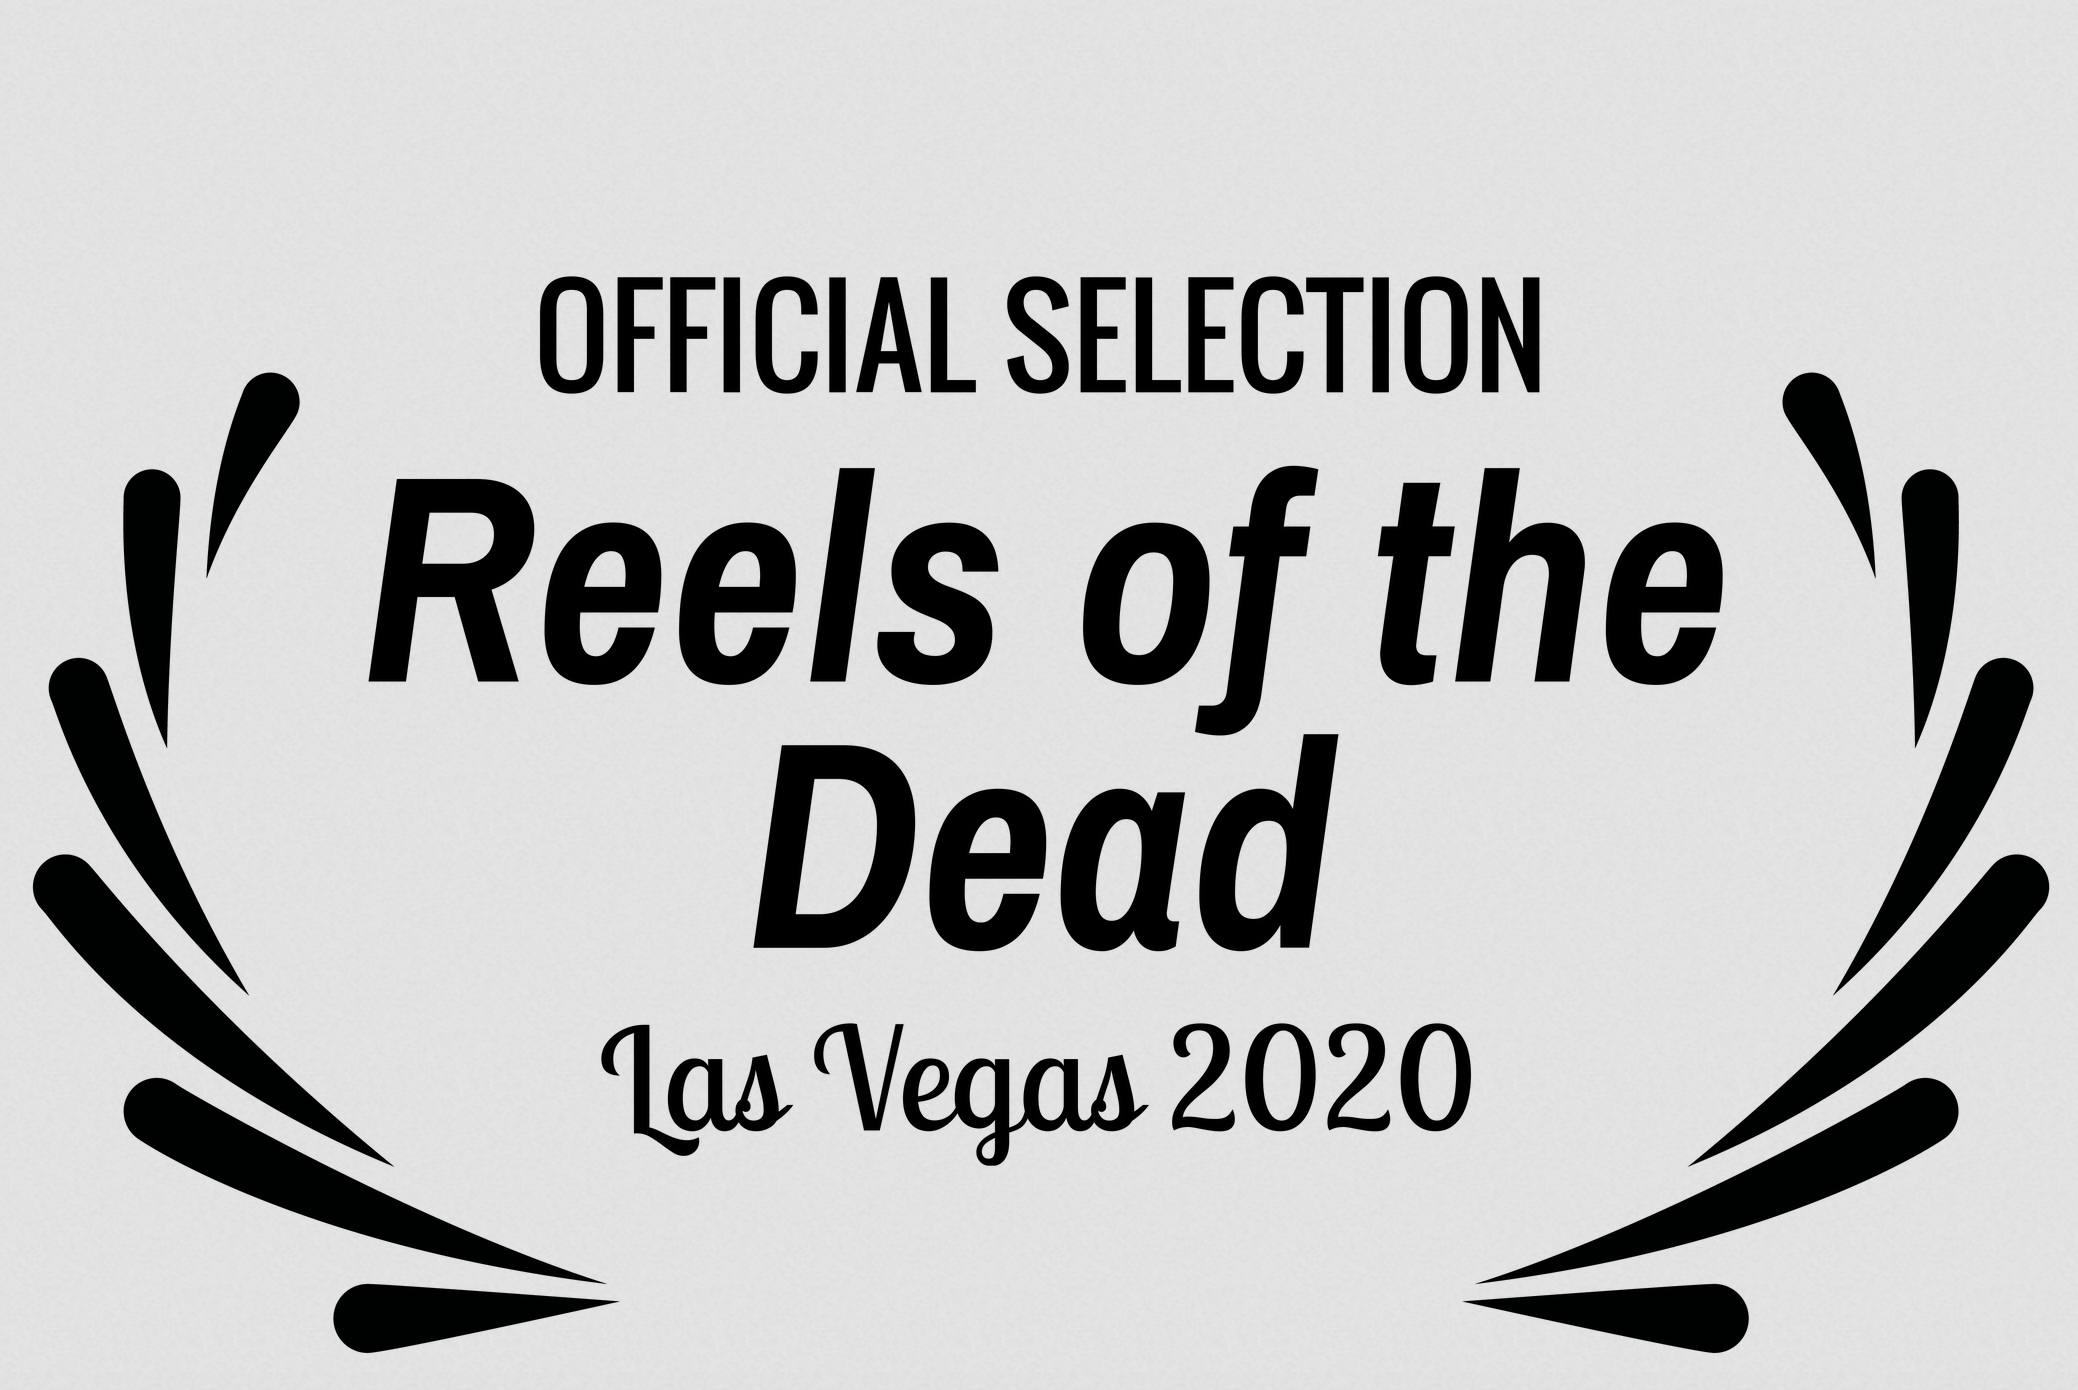 Reels of the Dead off sel